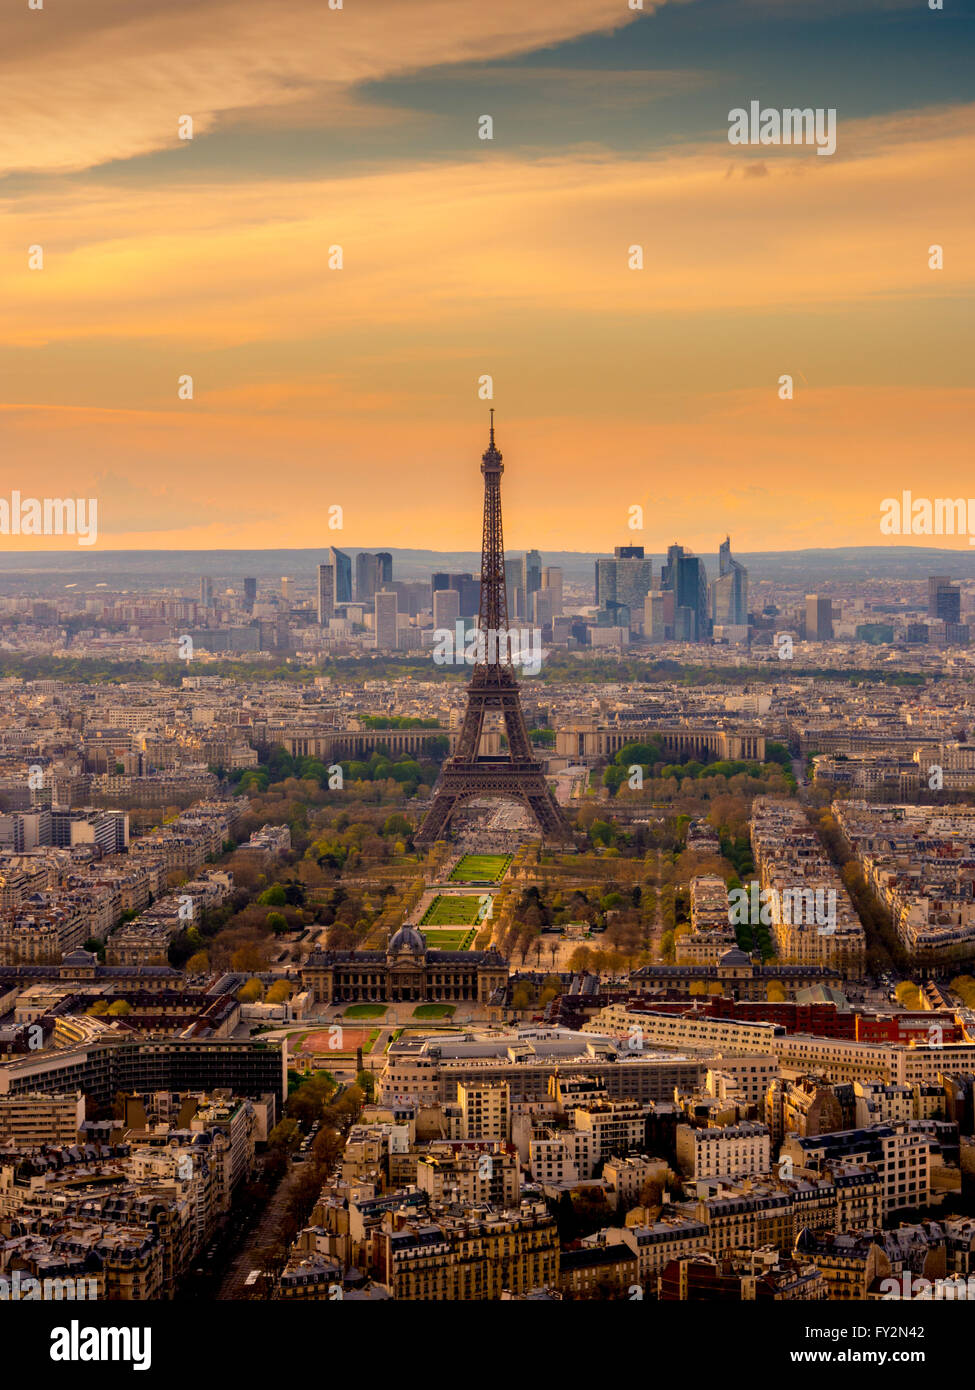 Coucher de soleil sur Paris avec la Tour Eiffel, Paris, France Photo Stock